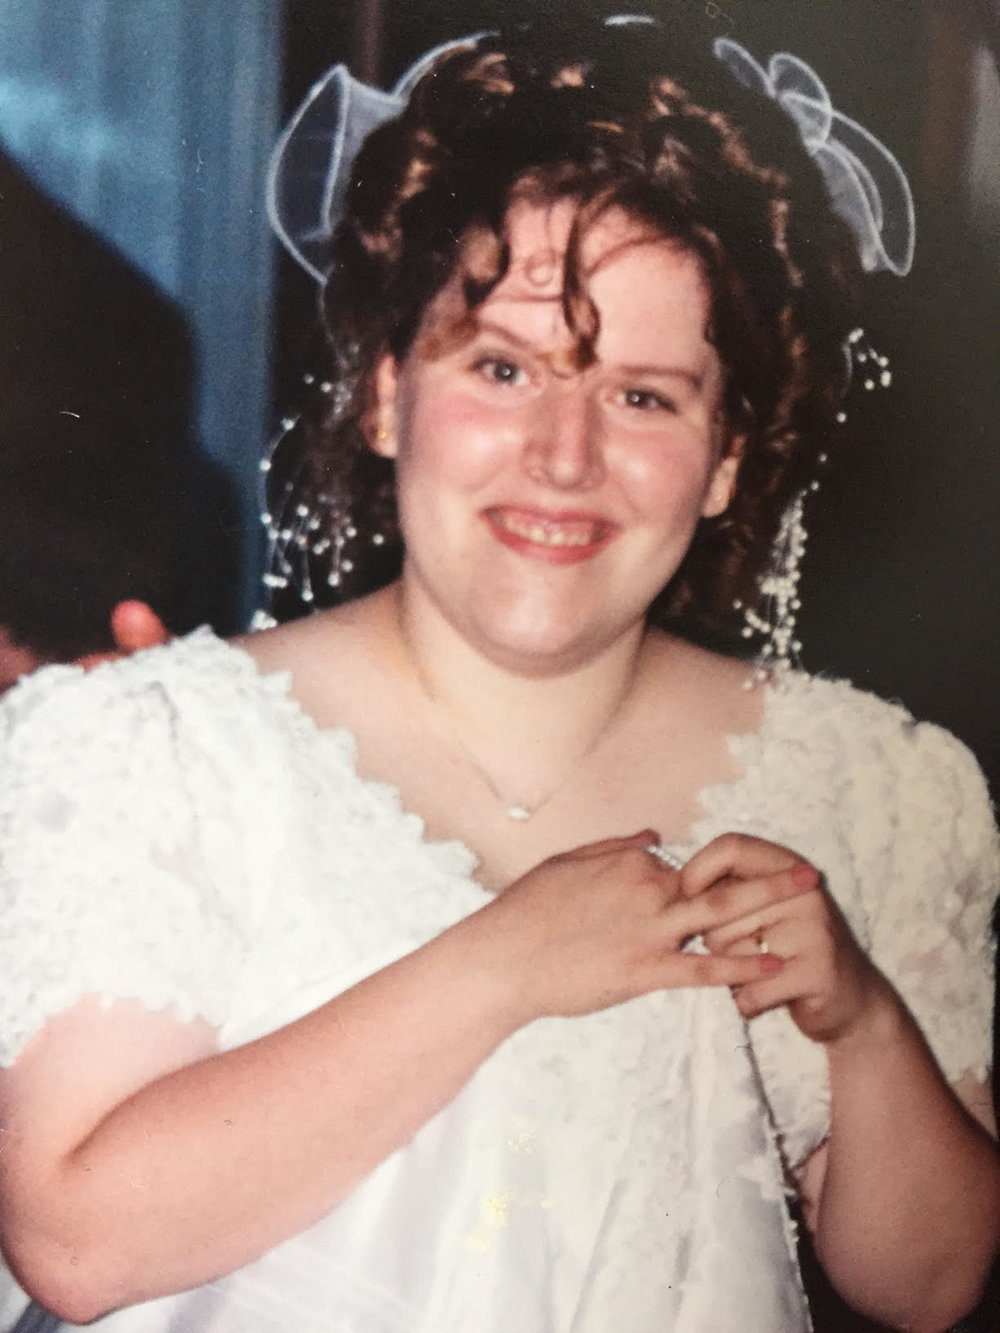 Me in all my mid-90's wedding glory. CHECK OUT THAT HAIR THOUGH.